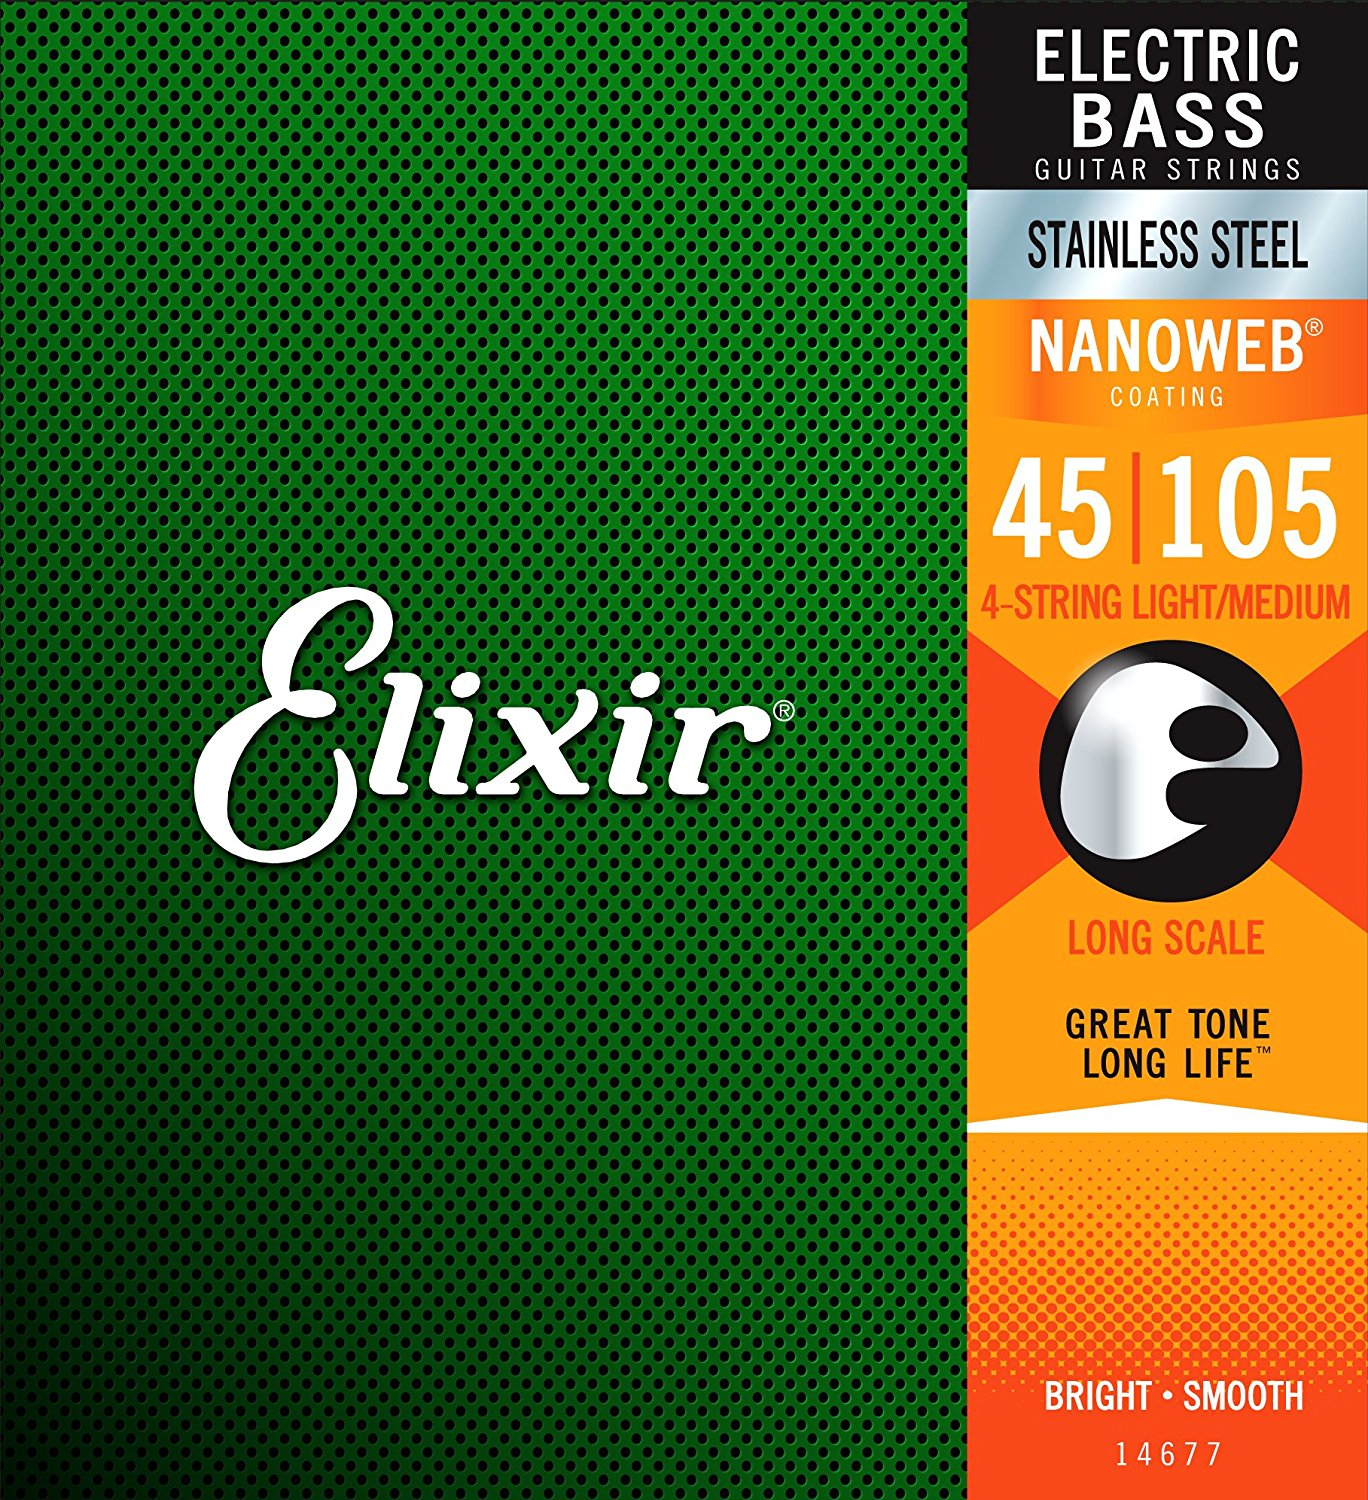 Elixir Strings 14677 Stainless Steel 4-String Bass Strings with NANOWEB Coating, Long Scale, Light/Medium (.045-.105) rotosound rs66lc bass strings stainless steel